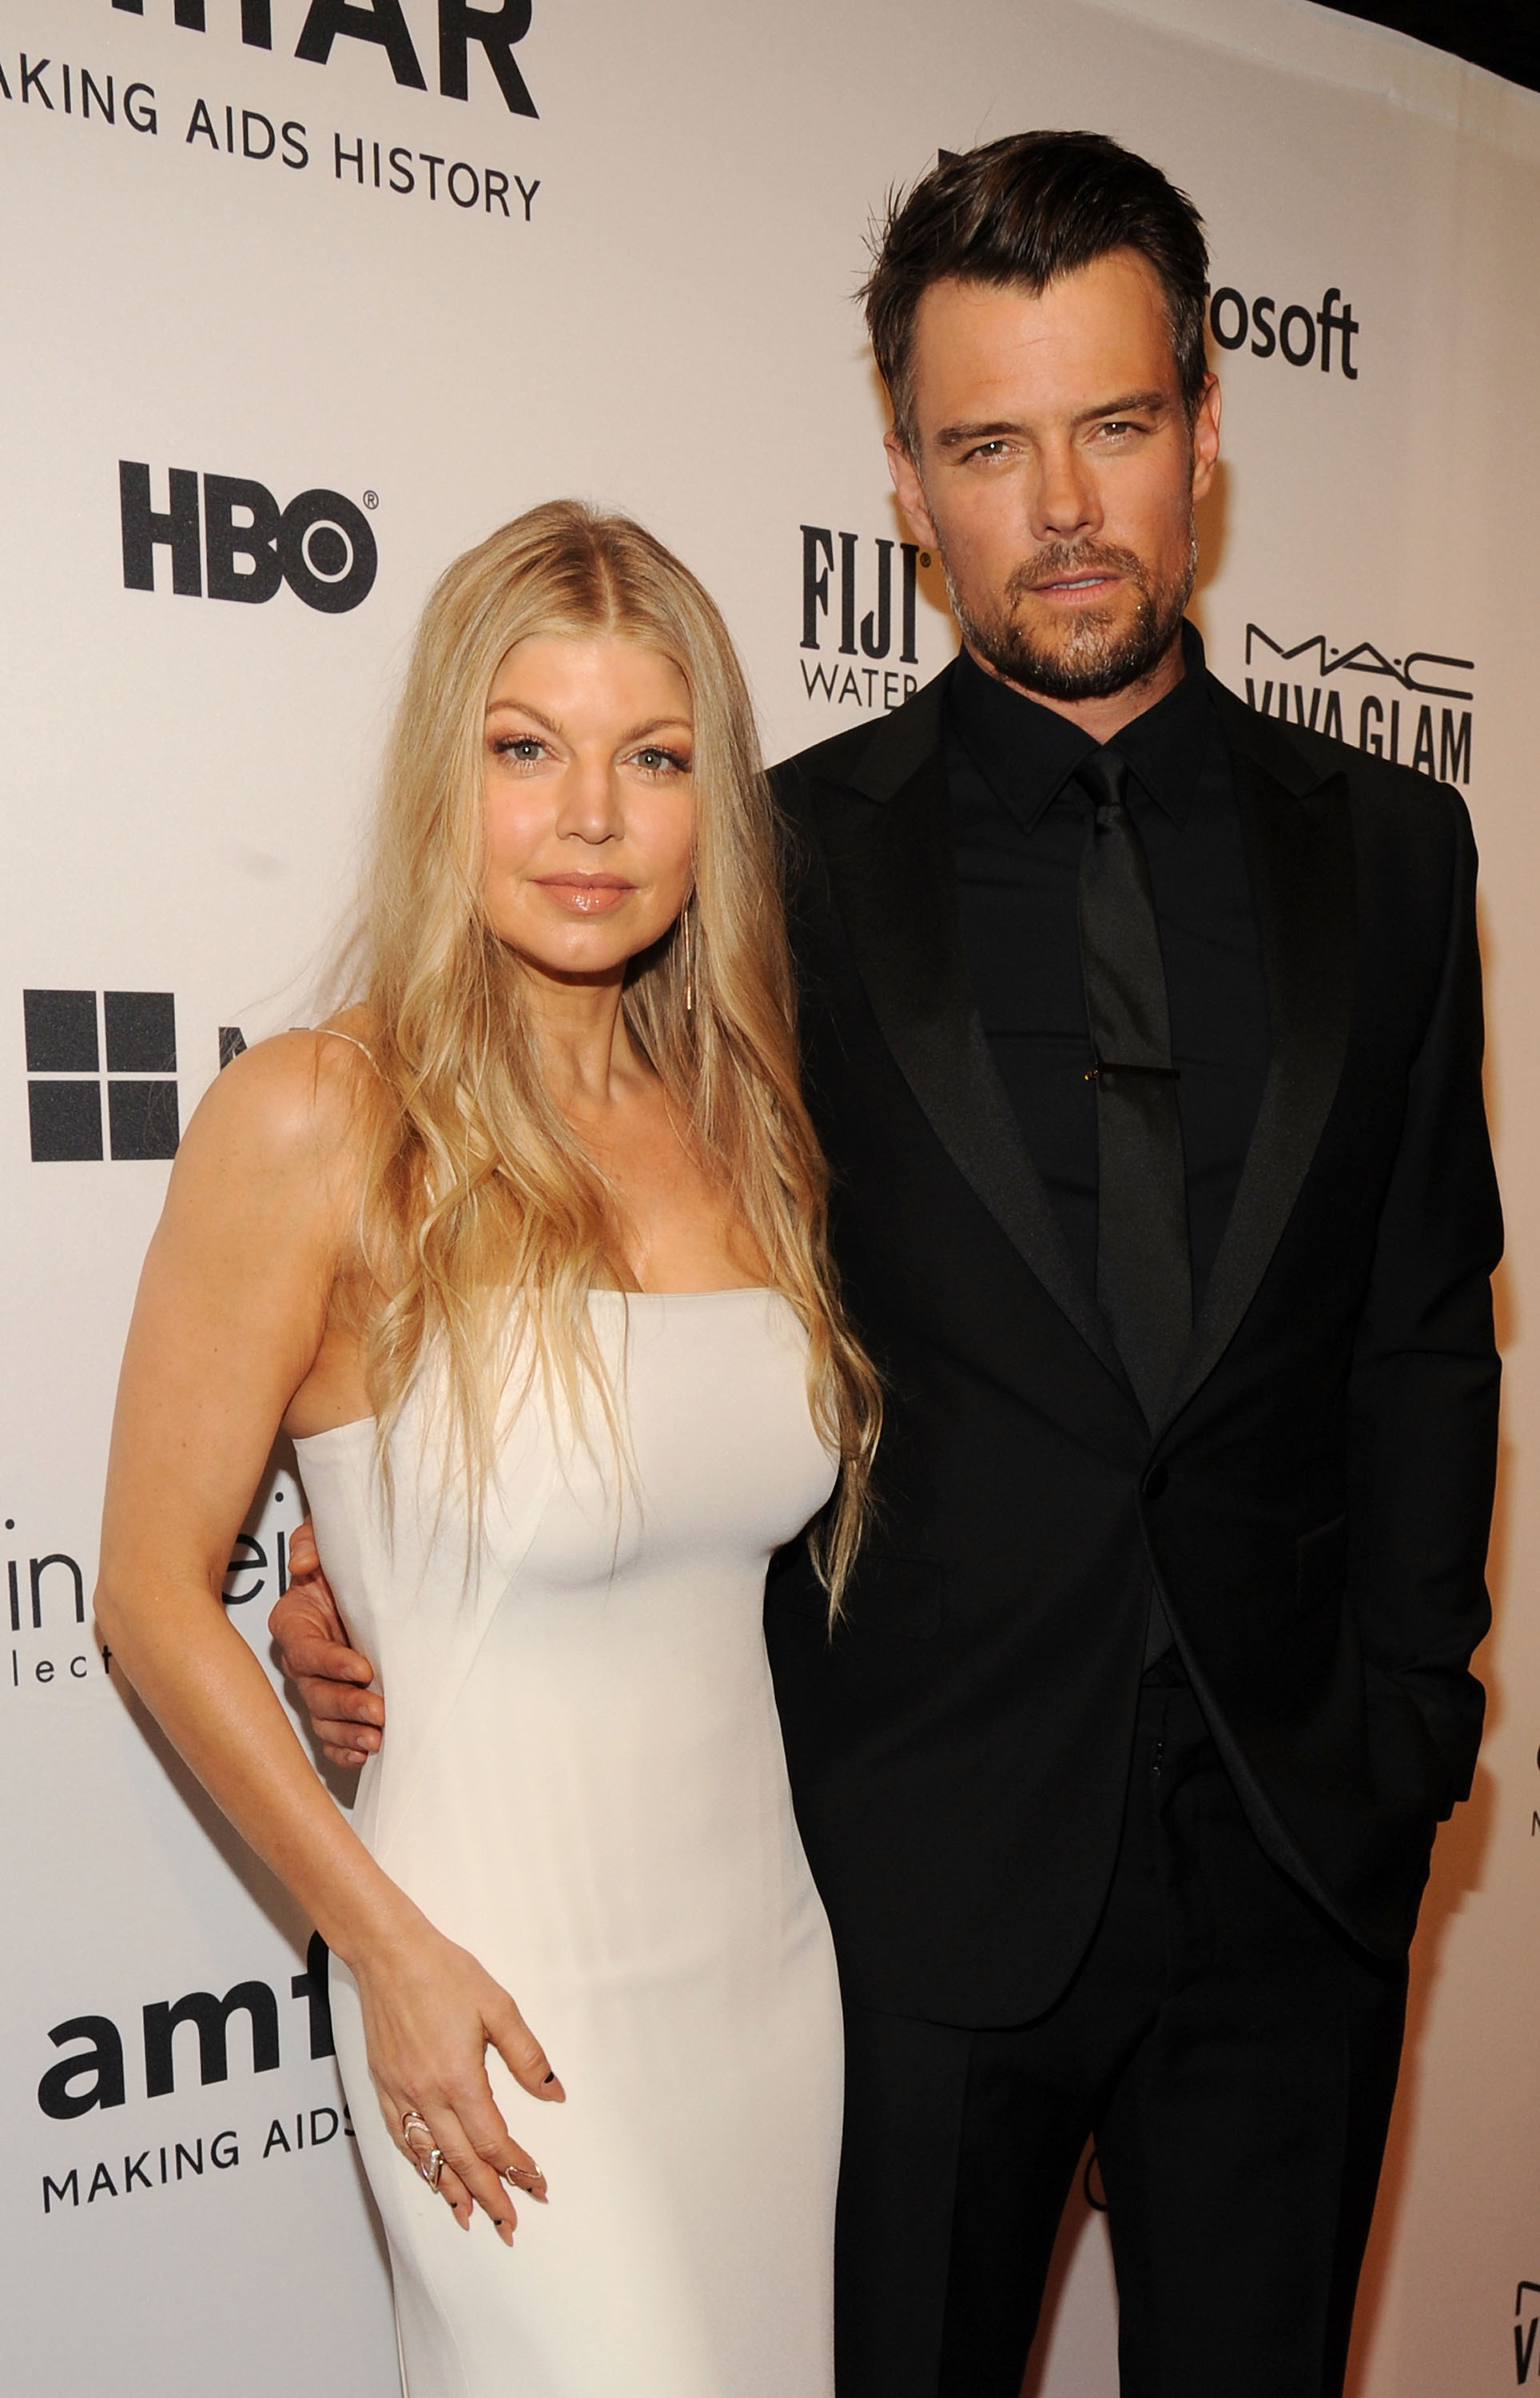 "<p>After eight years of what looked like a blissful wedded union, <a href=""http://thefix.nine.com.au/2017/09/15/05/39/fergie-and-josh-duhamel-split-after-eight-years-of-marriage"" target=""_blank"">pop rebel Fergie, 42, and actor Josh Duhamel, 44, have announced they'regoing their separate ways.</a></p> <p>The couple, who share a son Axl, have not confirmed the reason behind the split. Our hearts go out to both of them, Axl too, but it does appear the trio will still spend plenty of time together. </p> <p>""We are and will always be united in our support of each other and family,"" they said in a joint statement to <em><a href=""http://people.com/celebrity/fergie-josh-duhamel-split-eight-years-marriage/"" target=""_blank"">People</a></em>.</p> <p>We're glad of it too because this is a couple who gave us plenty of joy as far as beauty and style is concerned, Fergie in particular. Her wild braids, teamed with golden glowing skin, that lush blonde honey hair. Her epic smokey eye skills! And that perfect pout!</p> <p>No doubt she'll continue to look every bit as incredible in time to come - but just in case we don't see her for a wee while, here's a look back at all the times she made us swoon - Josh too.</p>"